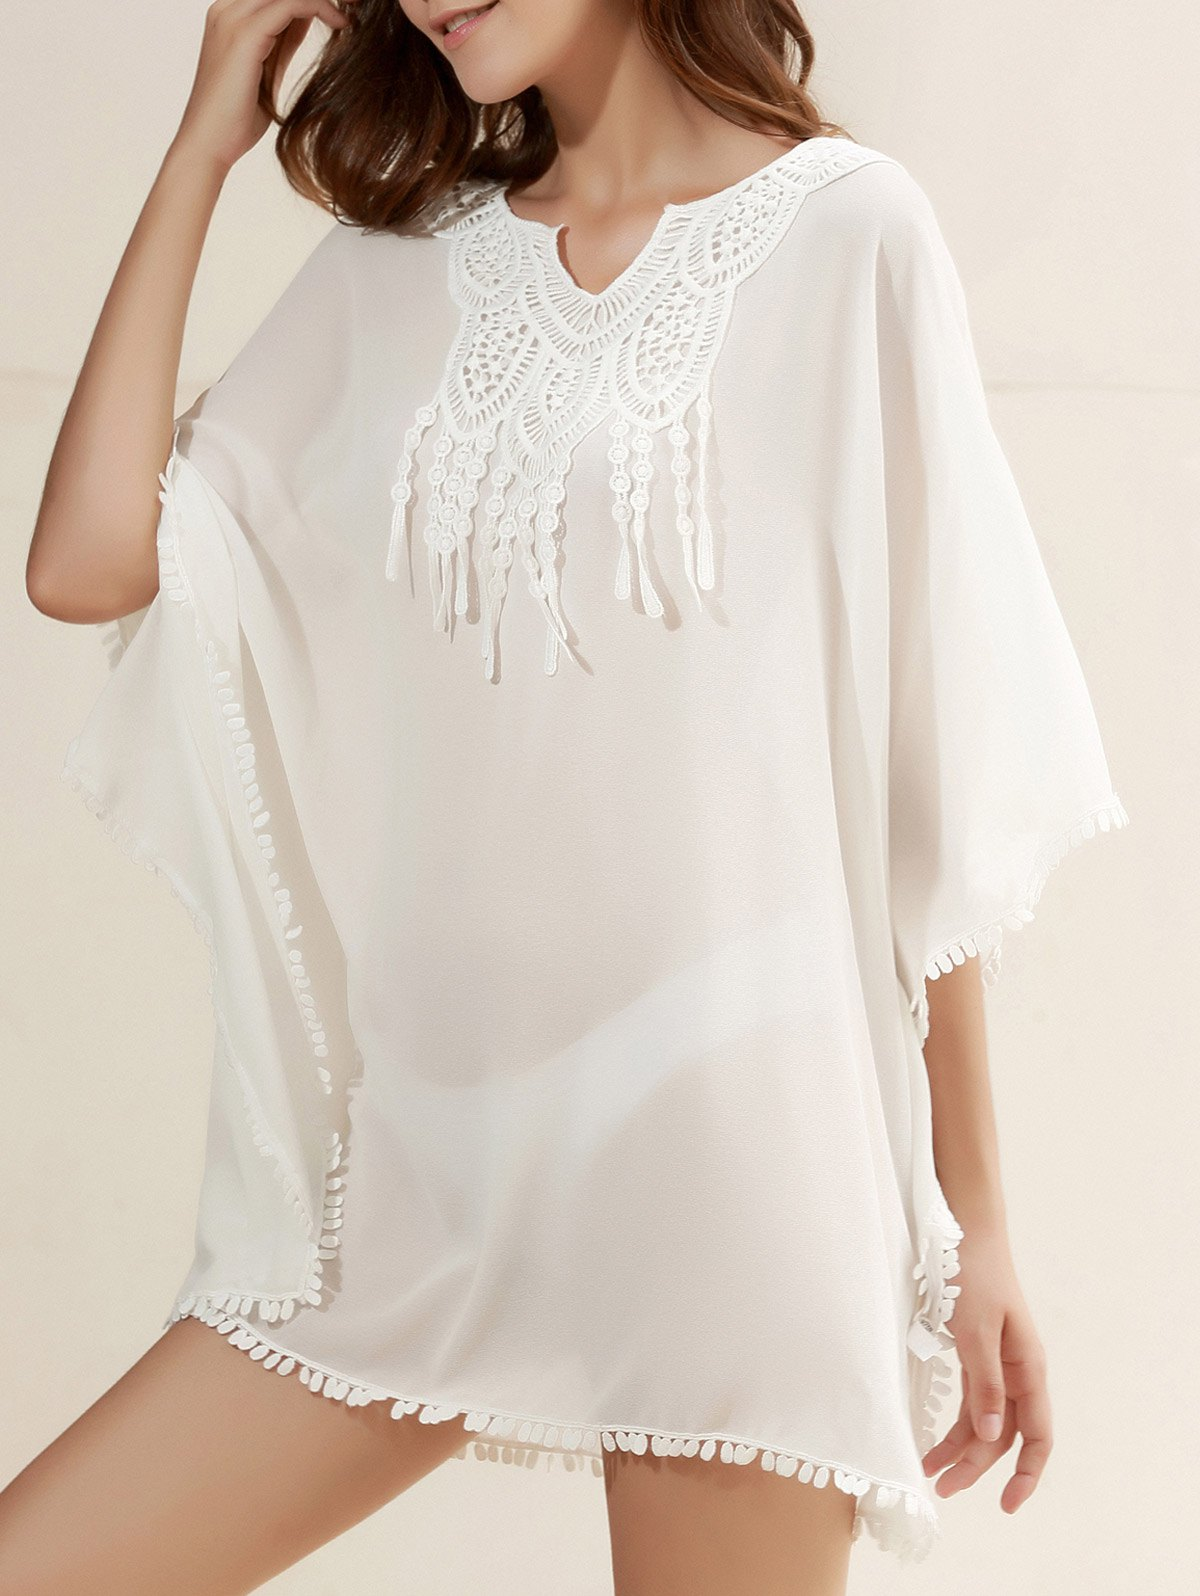 Sexy 3/4 Sleeve Scoop Neck See-Through Chiffon Women's Cover-Up - WHITE ONE SIZE(FIT SIZE XS TO M)